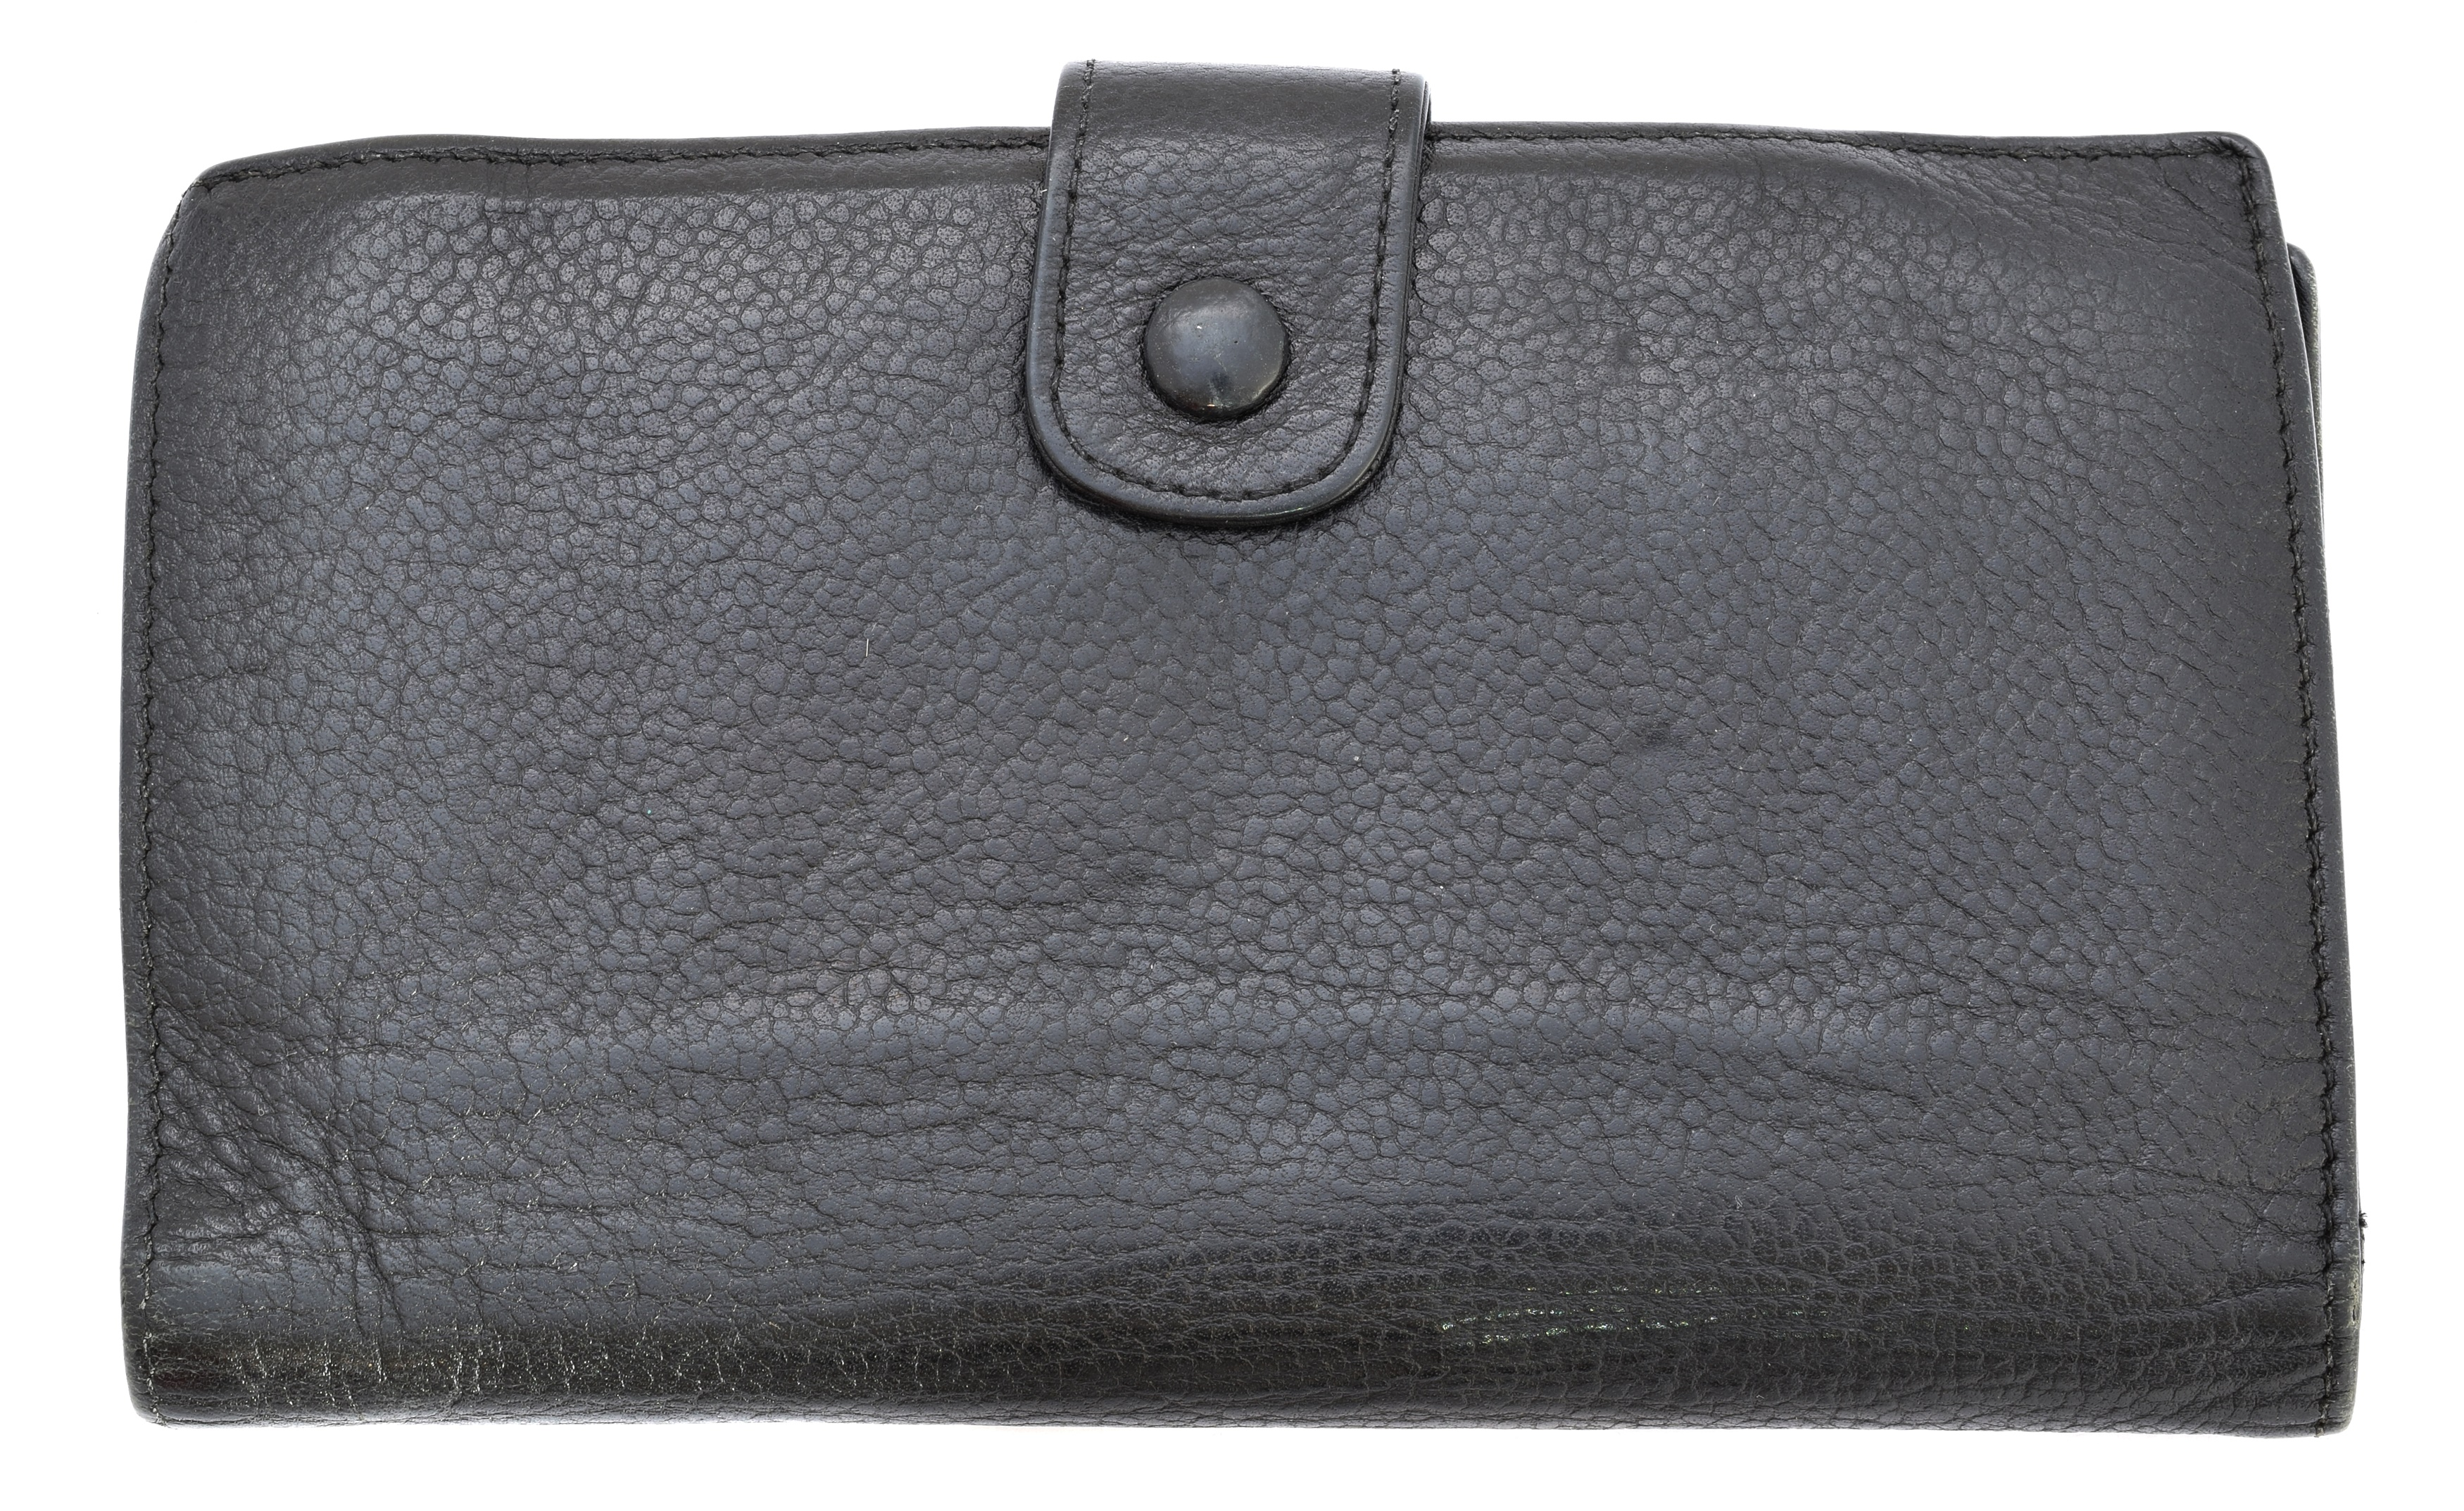 A Chanel Long Bifold Wallet, - Image 2 of 2